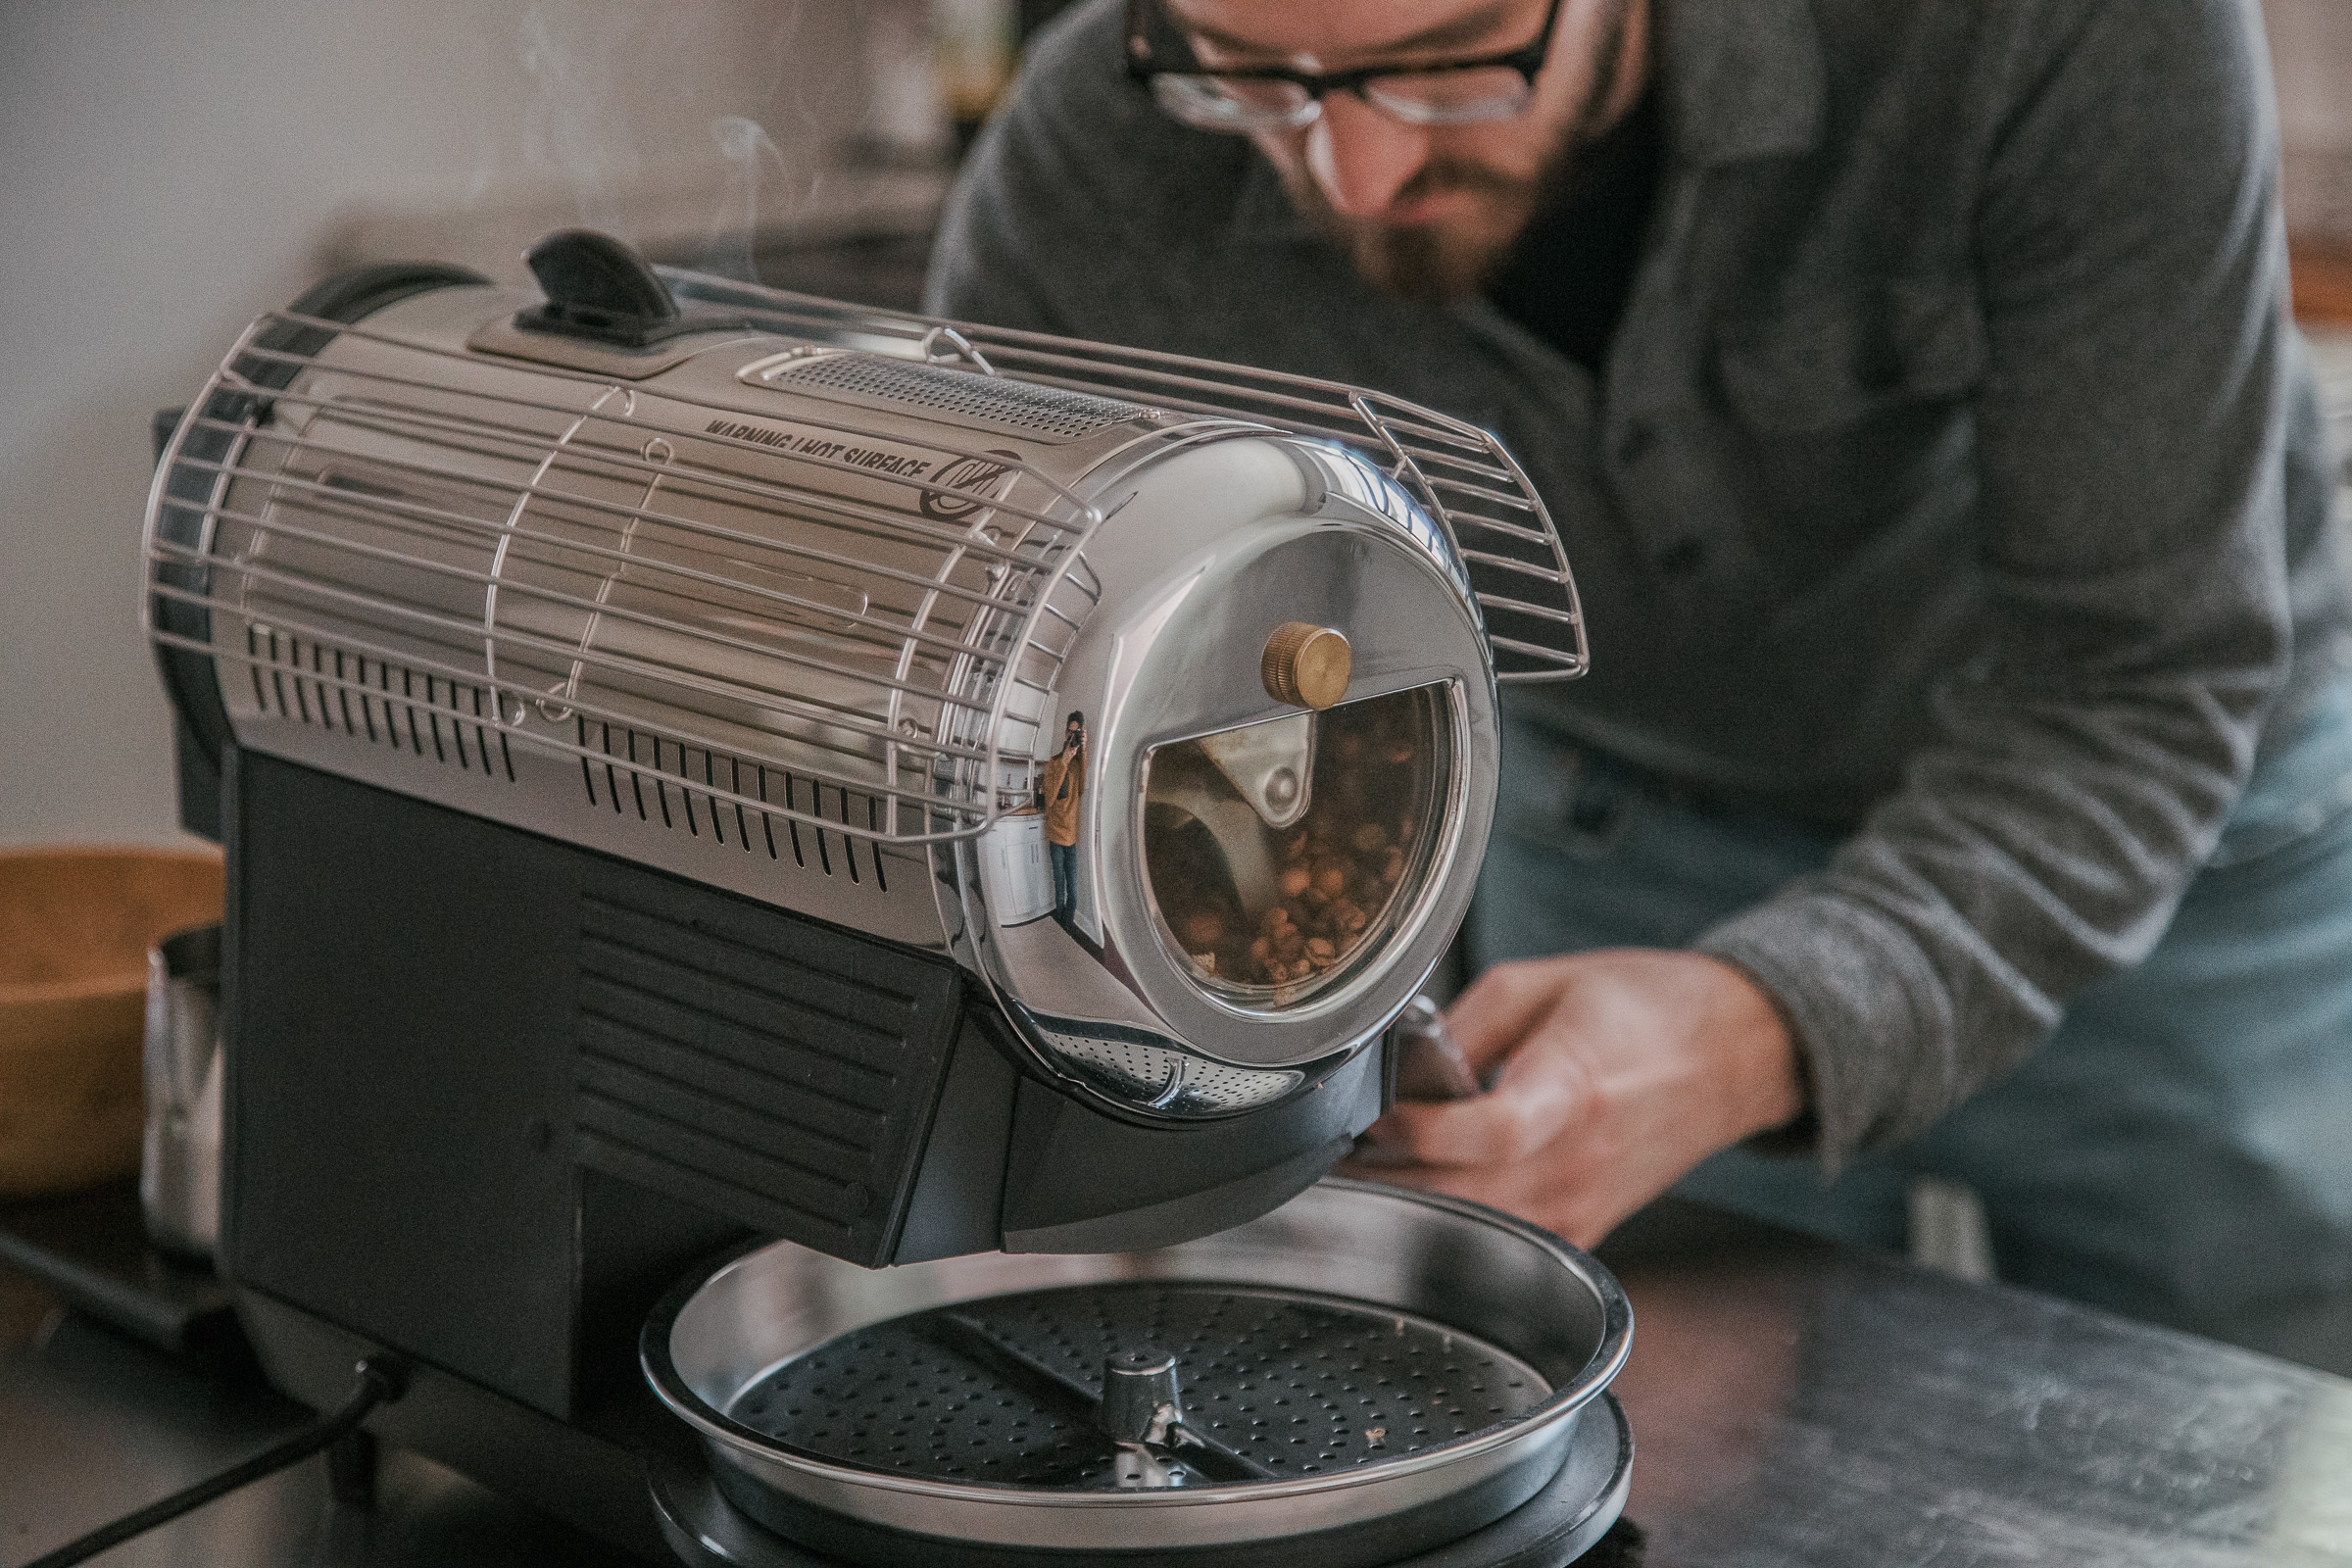 A person looking at their stopwatch, getting ready to make adjustments to the Hottop Coffee Roaster.